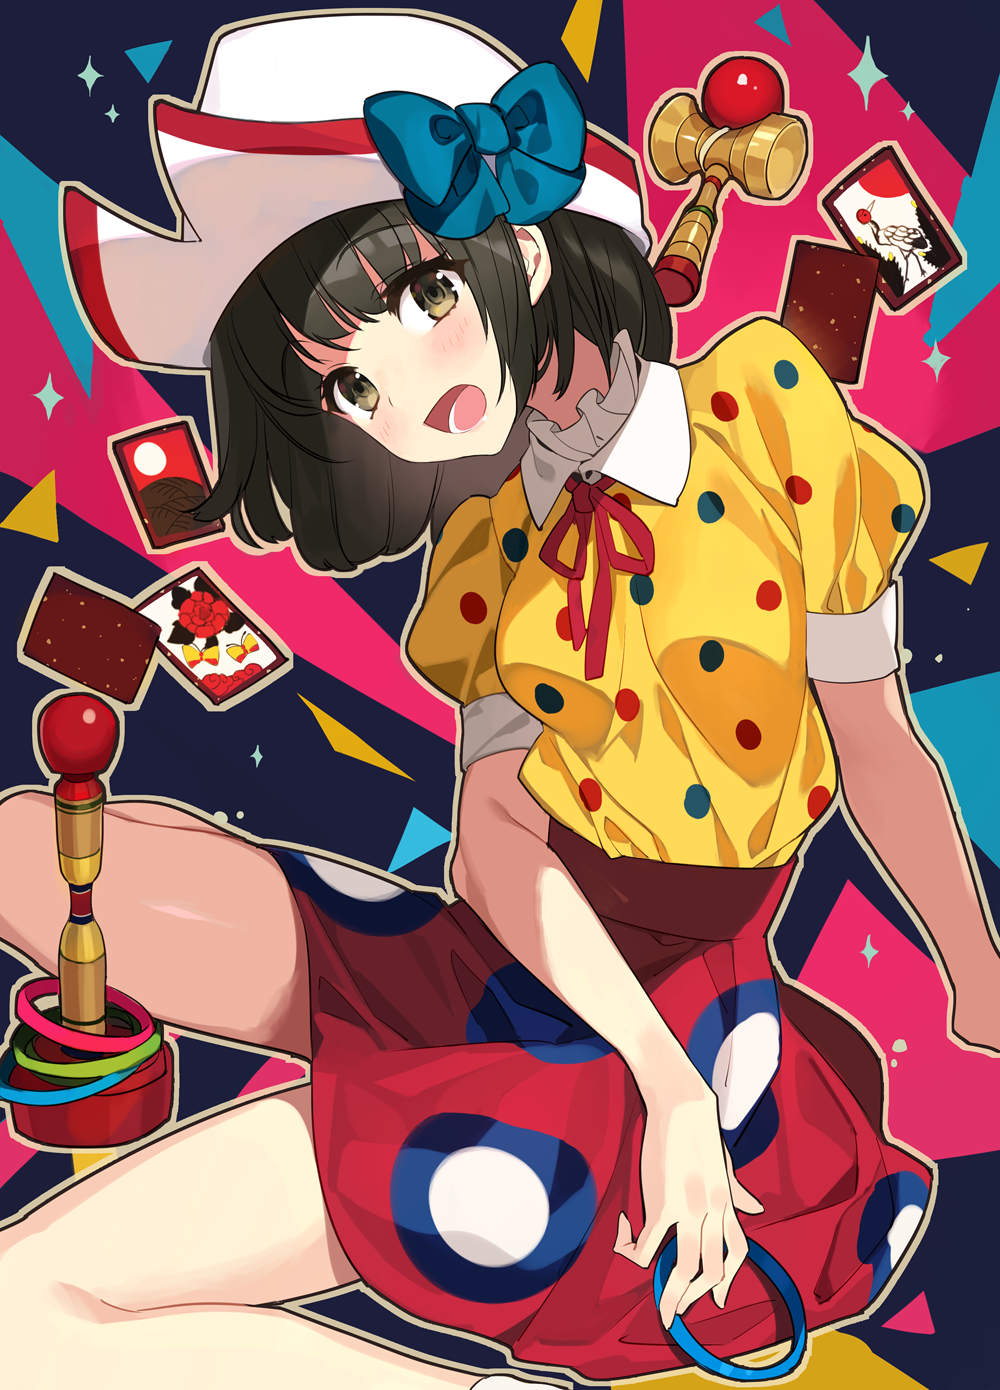 1girl :d bangs bare_legs black_hair blue_bow blush bow brown_eyes card collared_shirt eyebrows_visible_through_hair hanafuda hat head_tilt high-waist_skirt highres kendama komeo15 looking_at_viewer medium_hair neck_ribbon open_mouth original patterned_background patterned_clothing pleated_skirt polka_dot puffy_sleeves red_ribbon red_skirt ribbon shirt shirt_tucked_in short_sleeves sitting skirt smile solo toy white_headwear yellow_shirt